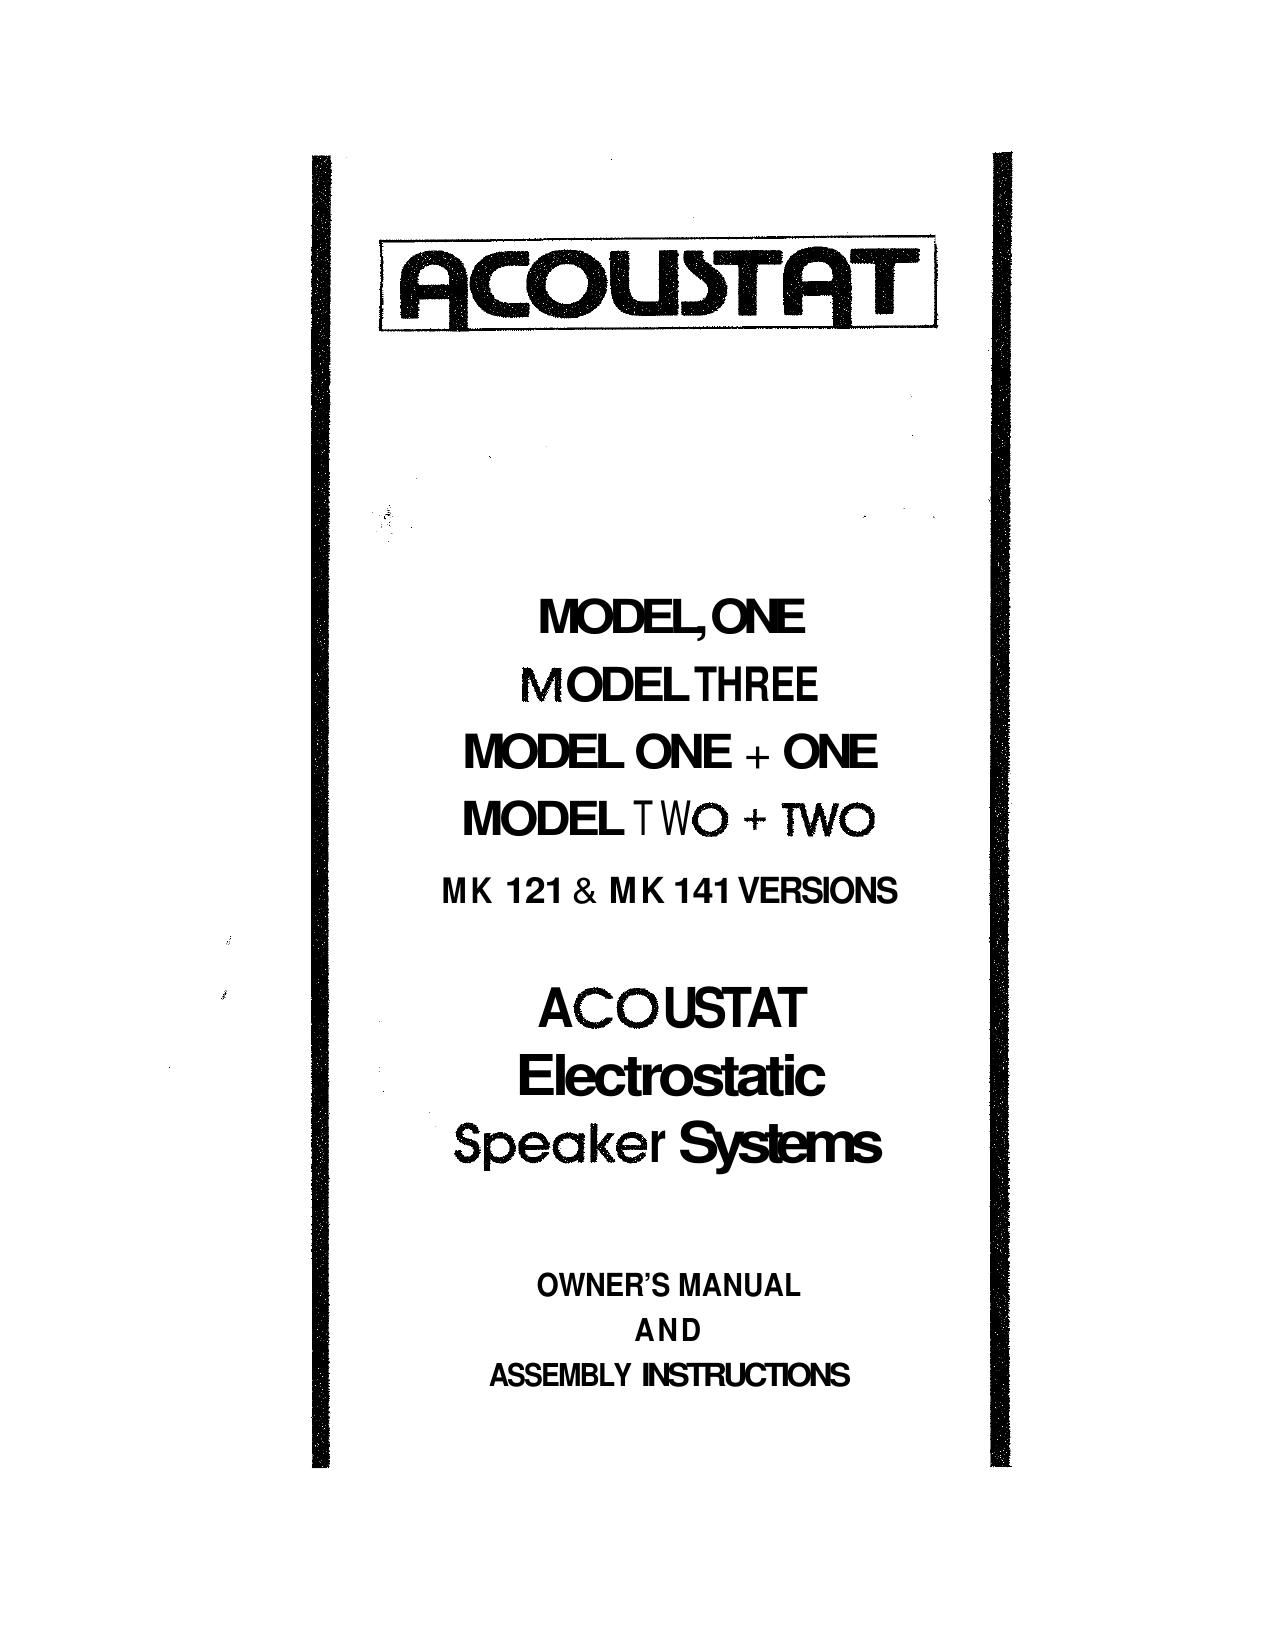 Acoustat Model 2.2 Owners Manual